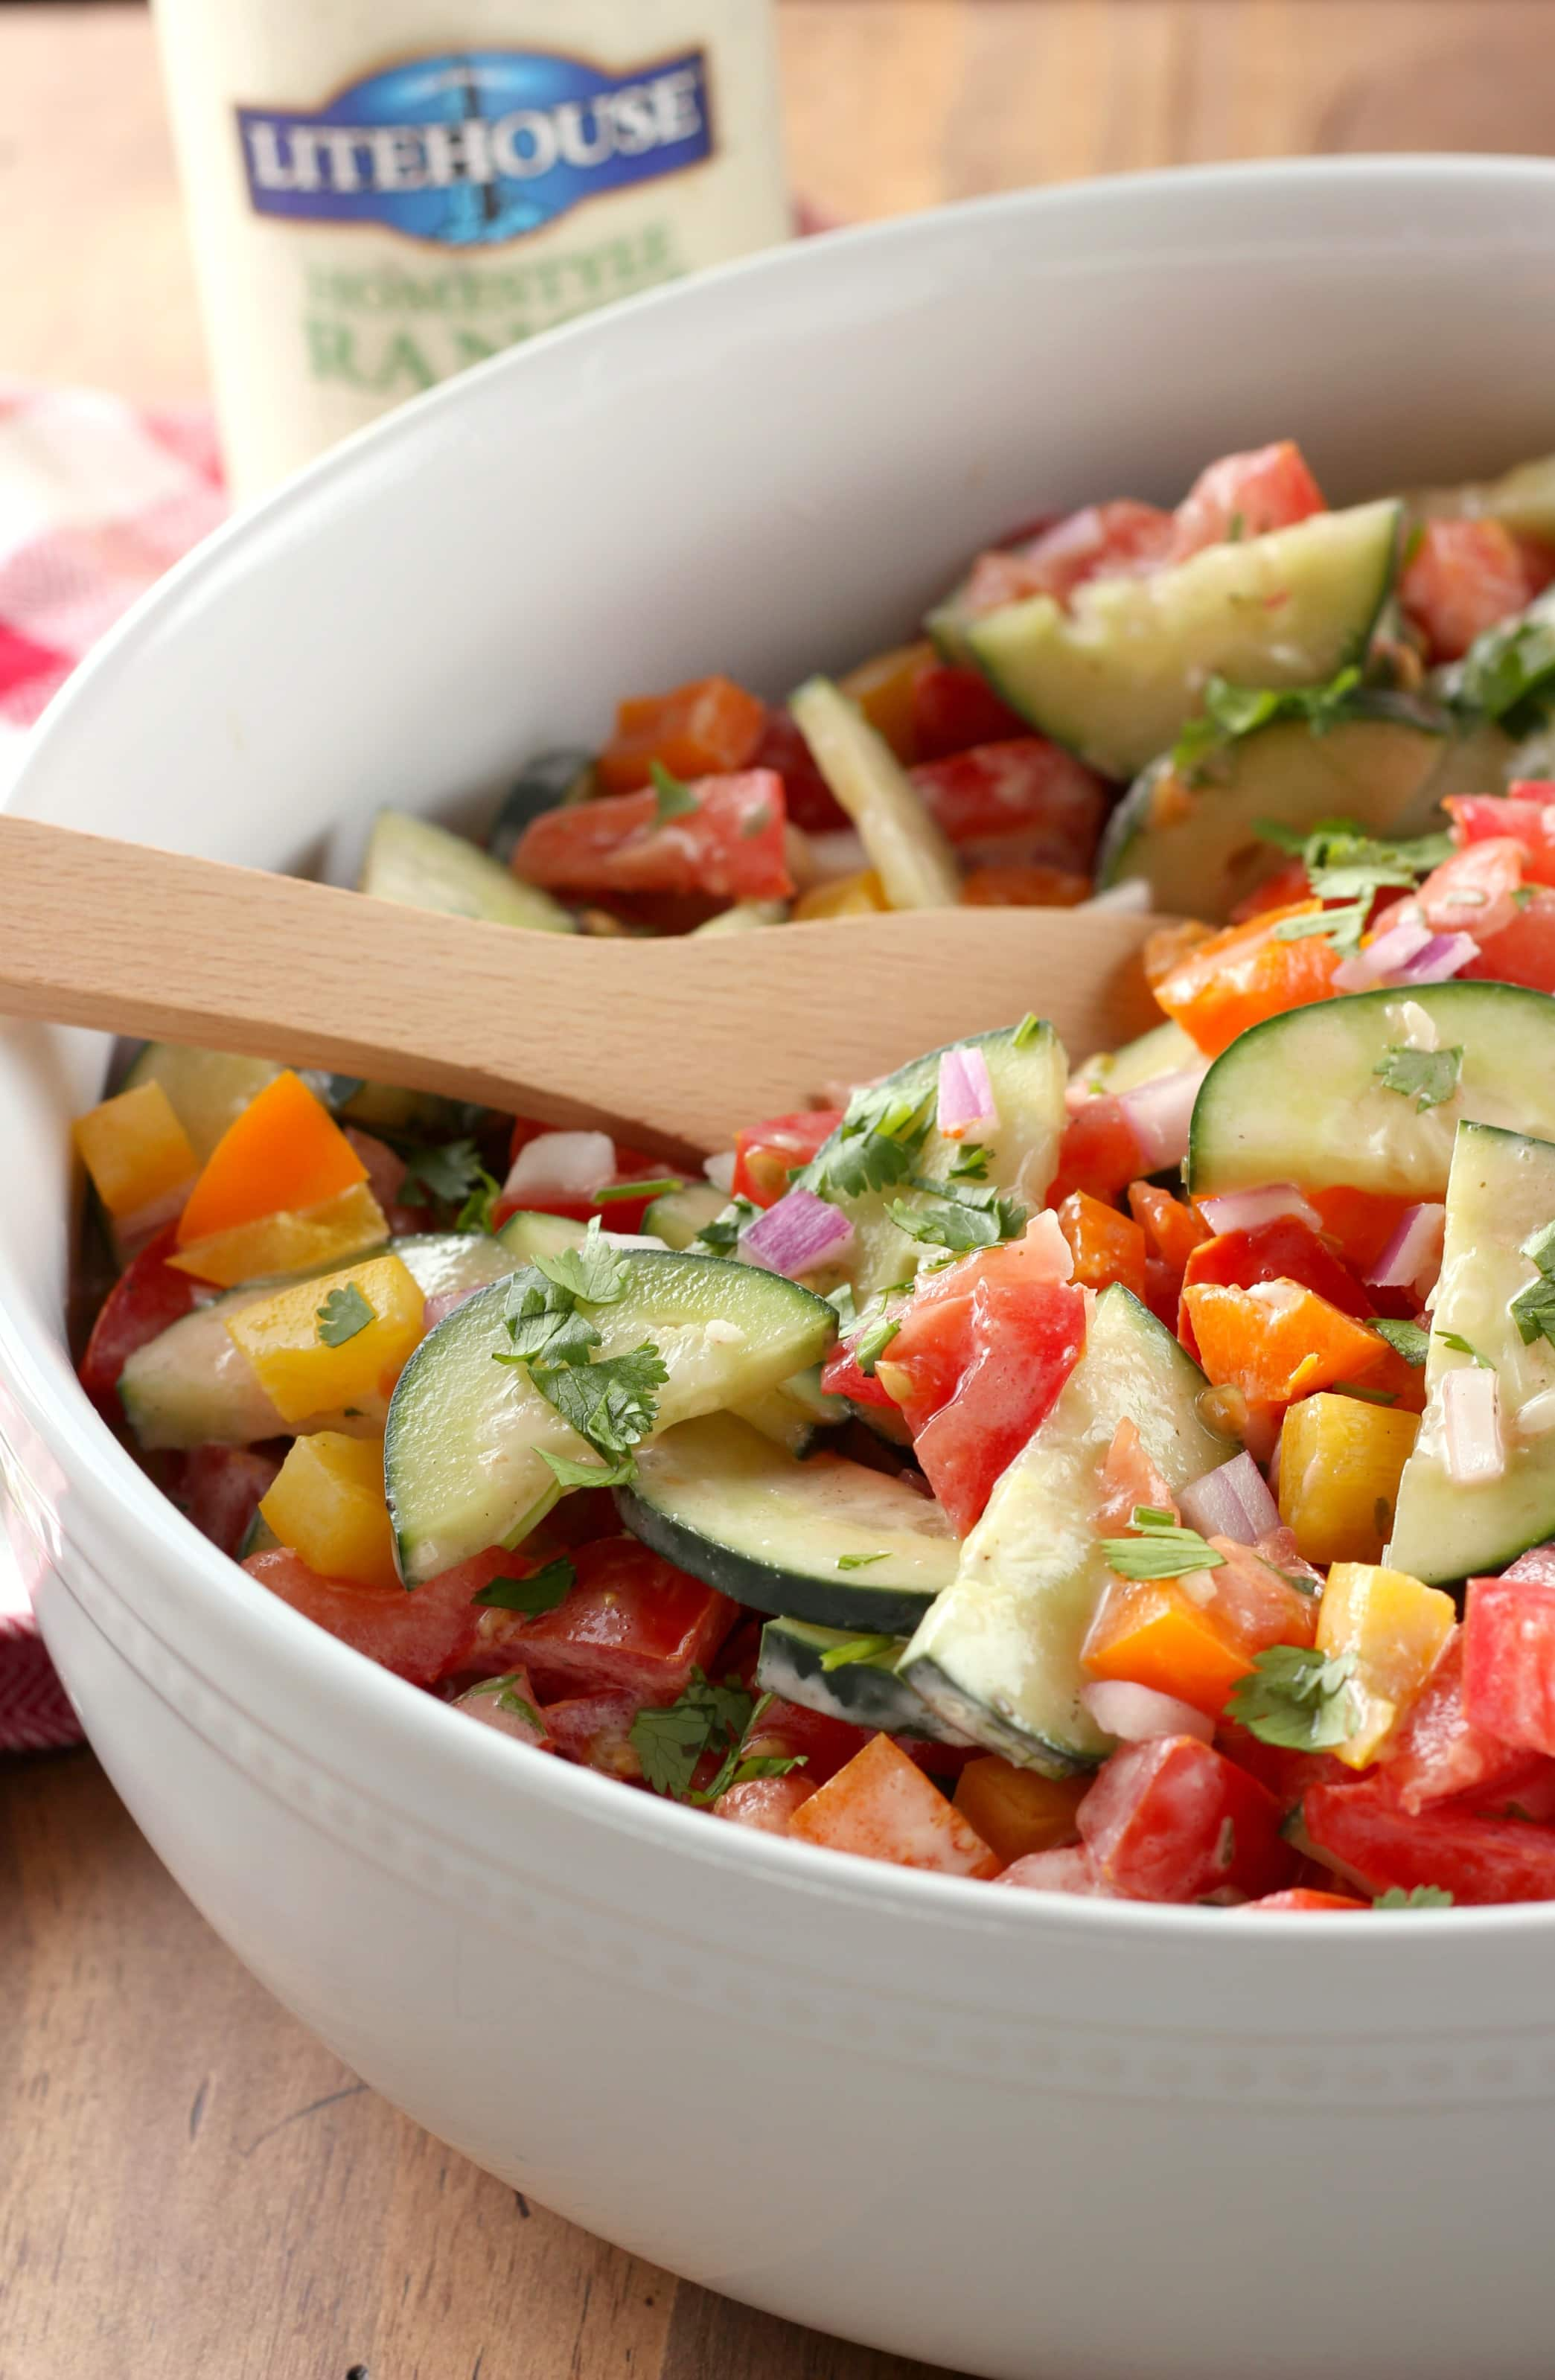 Ranch Tomato Cucumber Salad with Litehouse Dressing